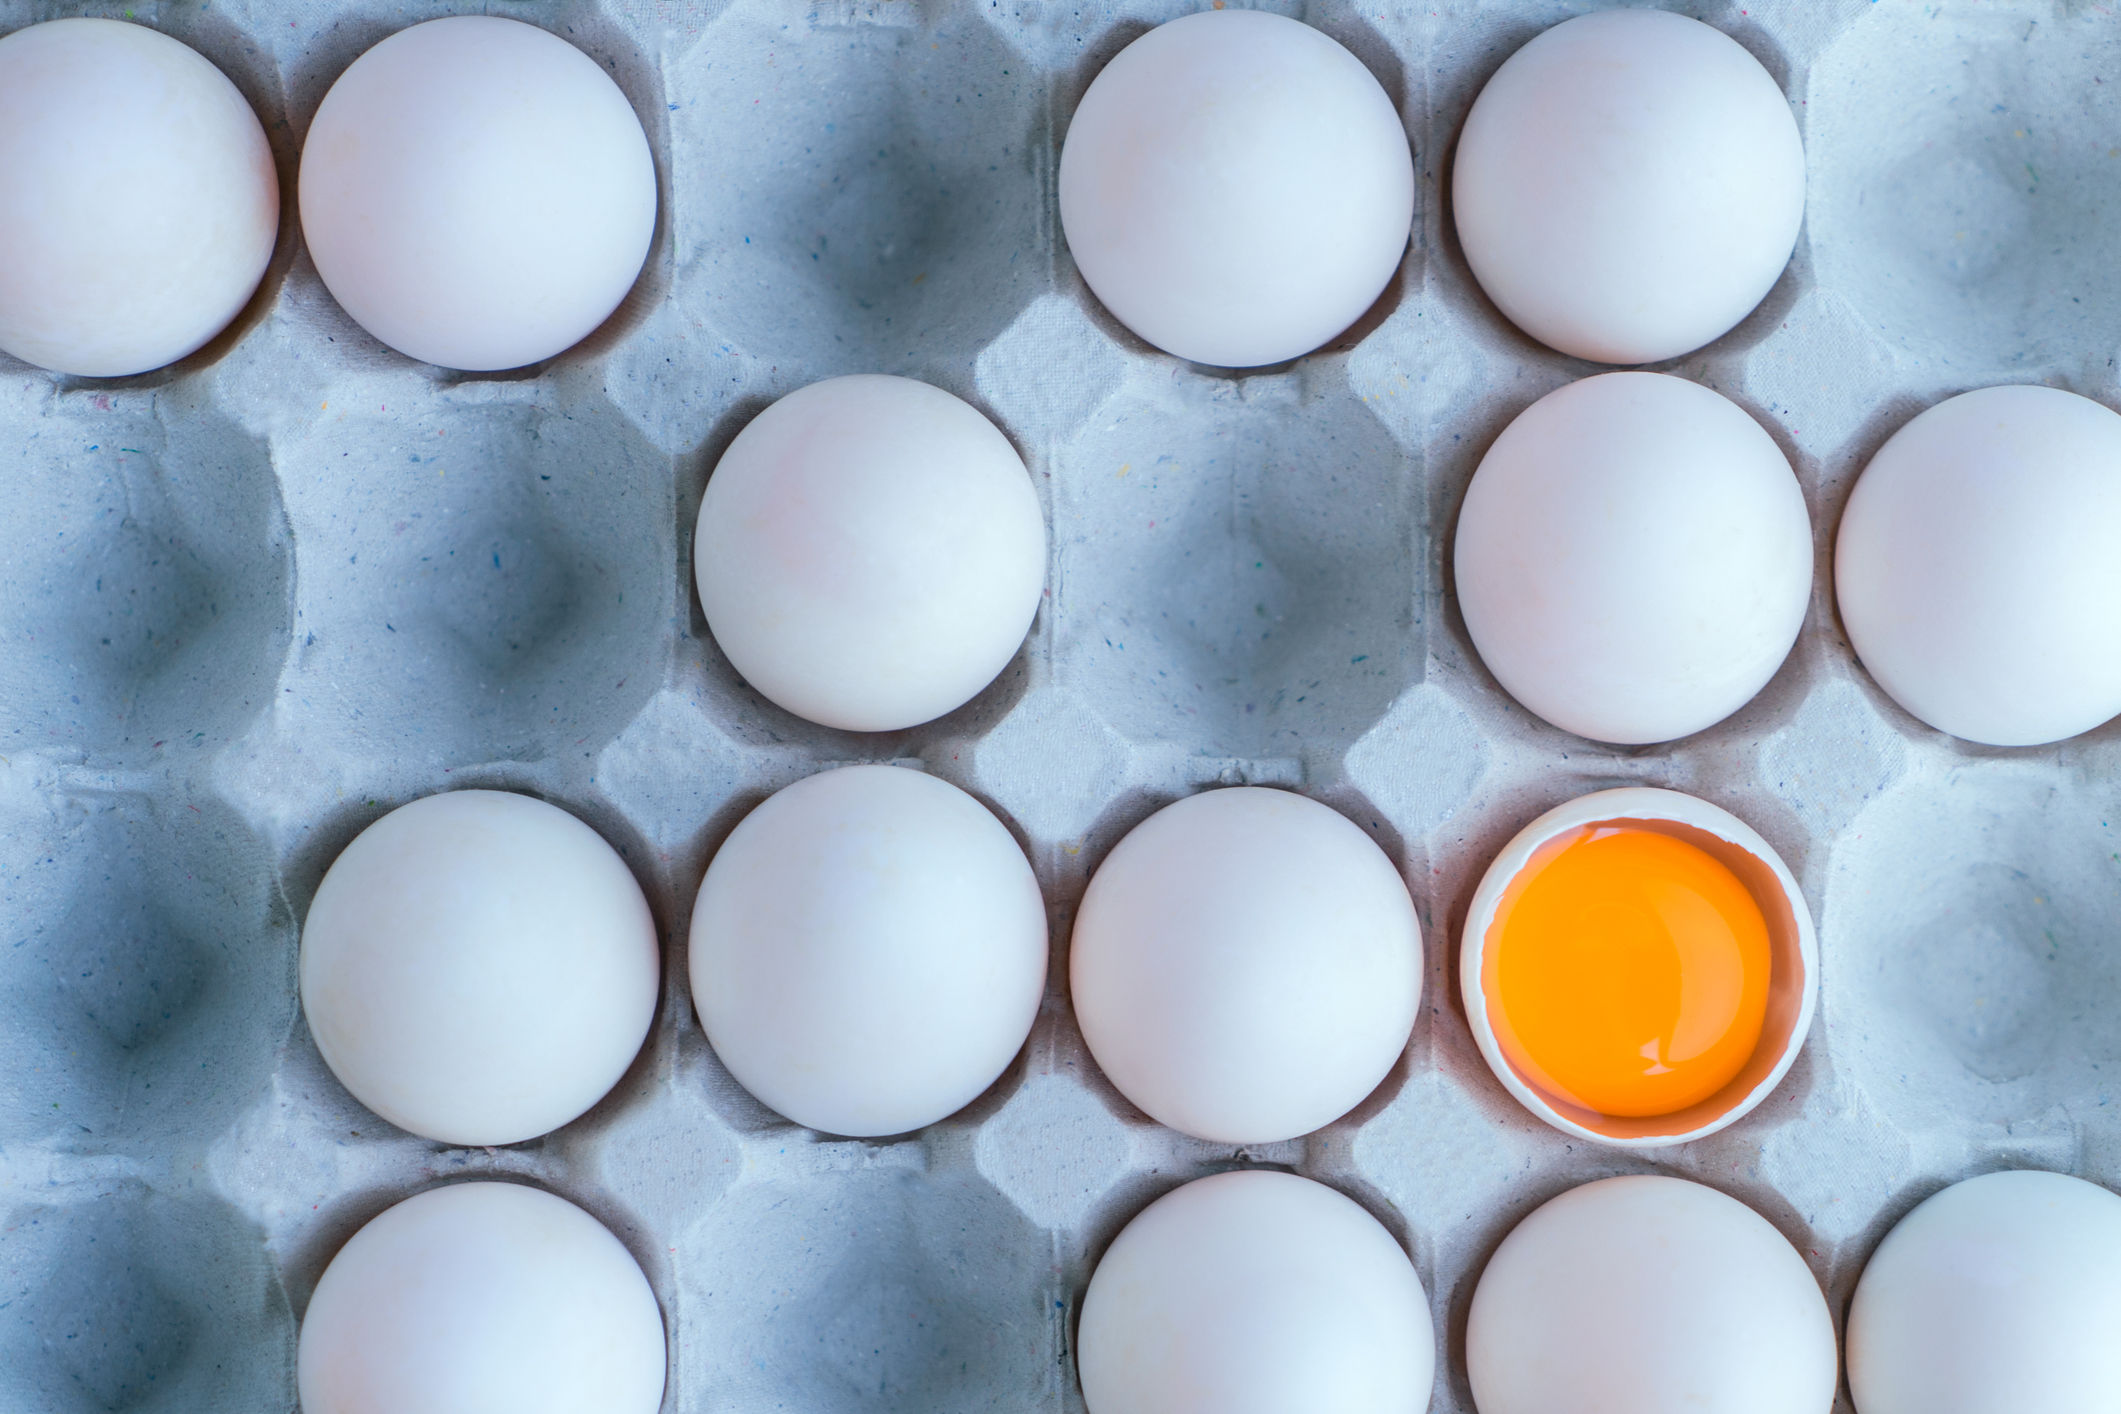 Are Eggs Healthy? Here's What Experts Say